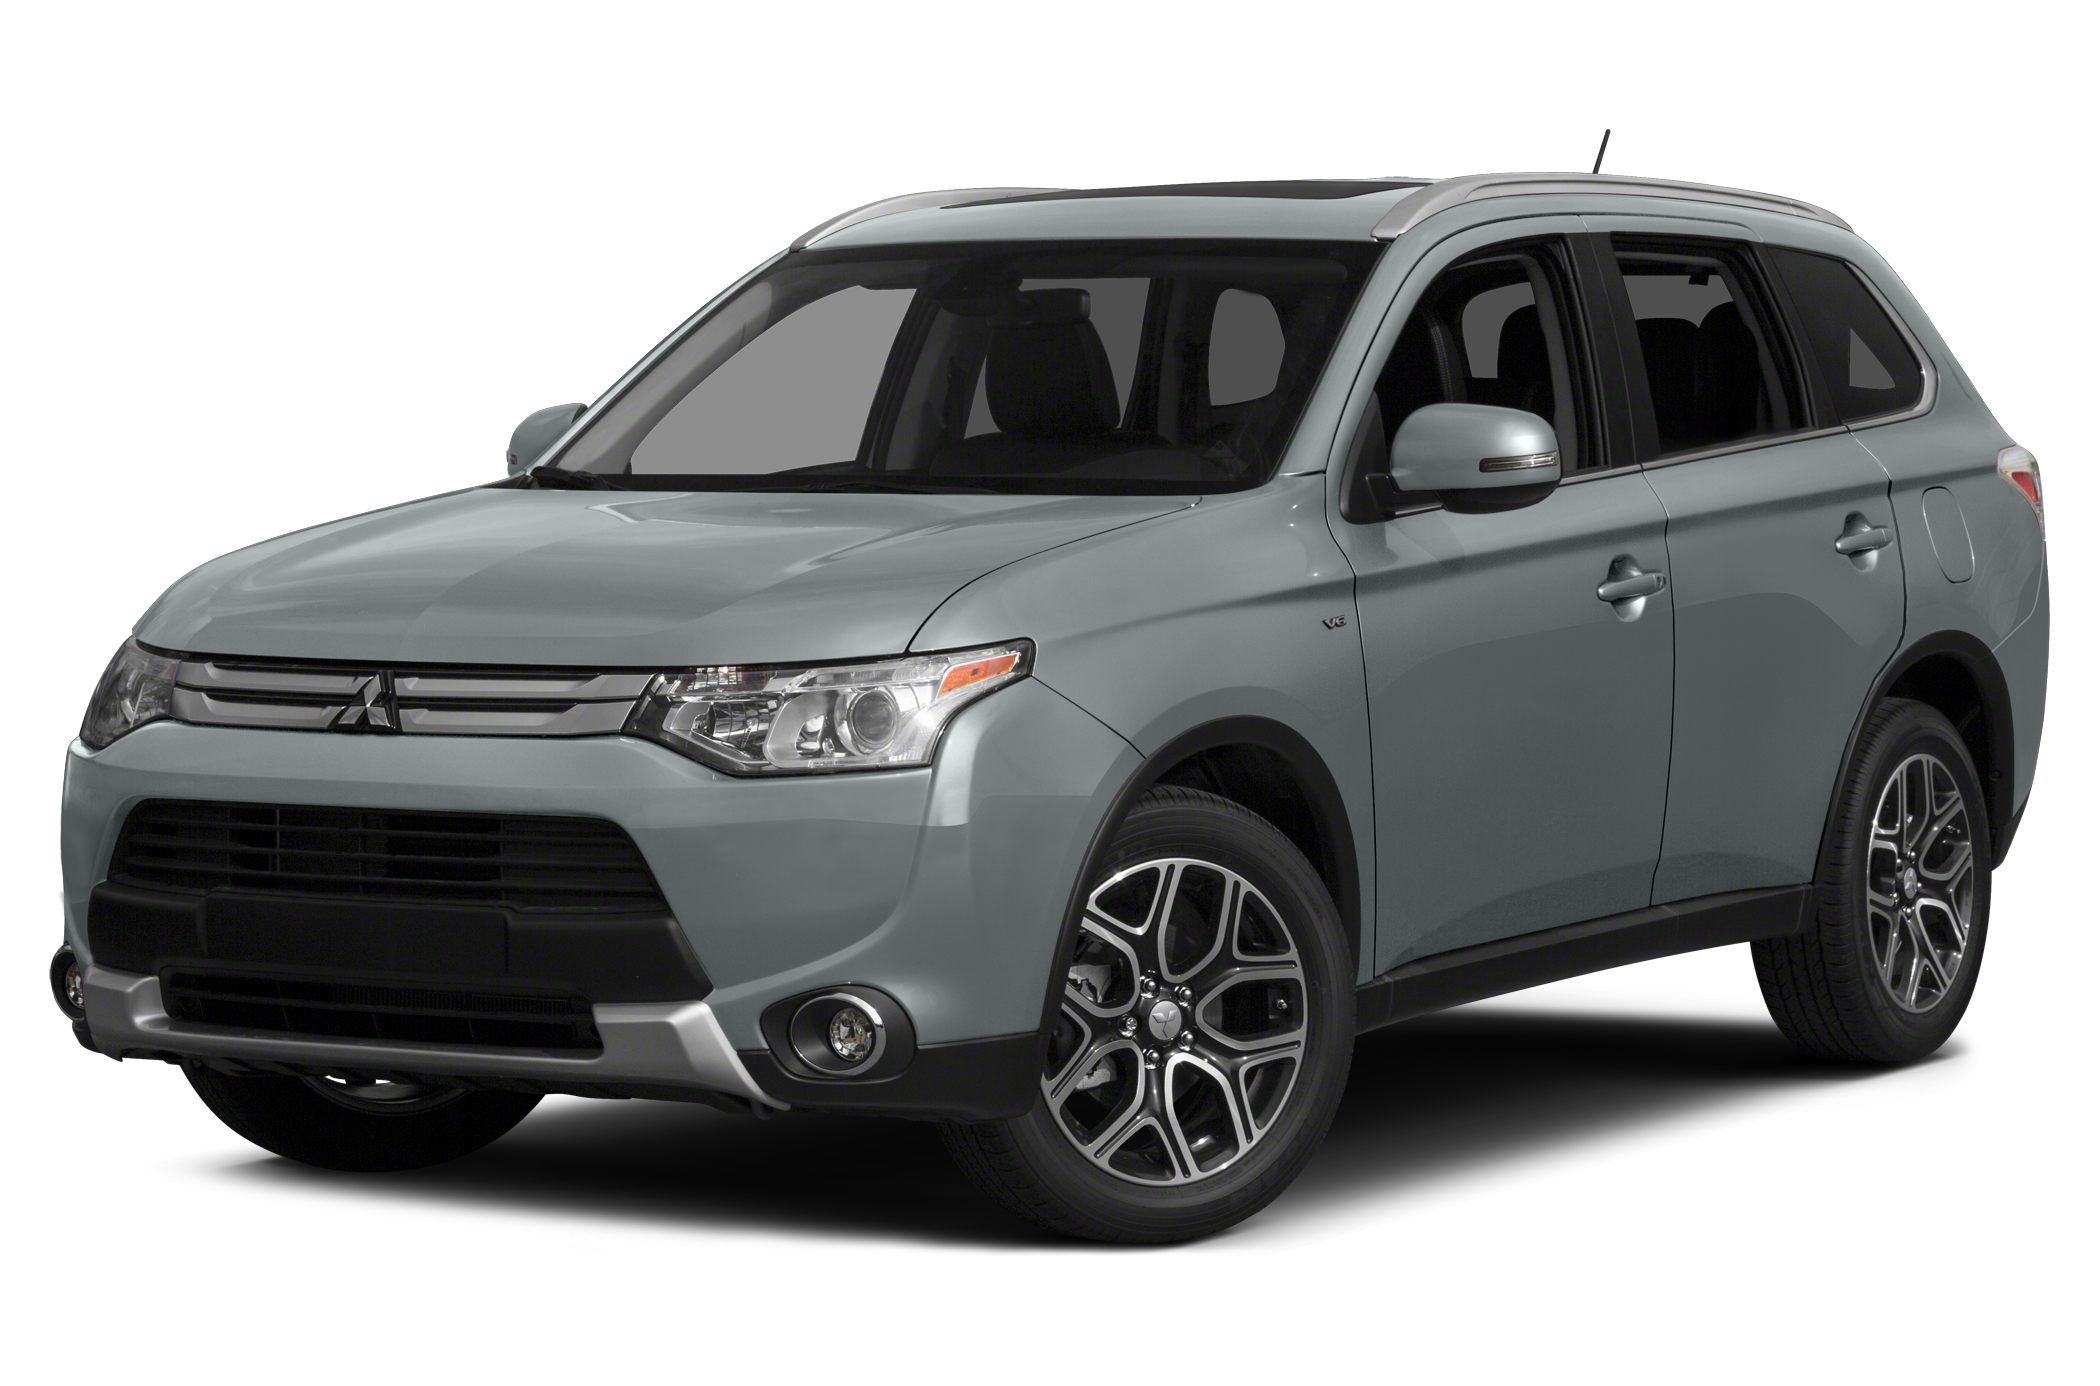 2015 Mitsubishi Outlander GT 4dr 4x4 Pictures